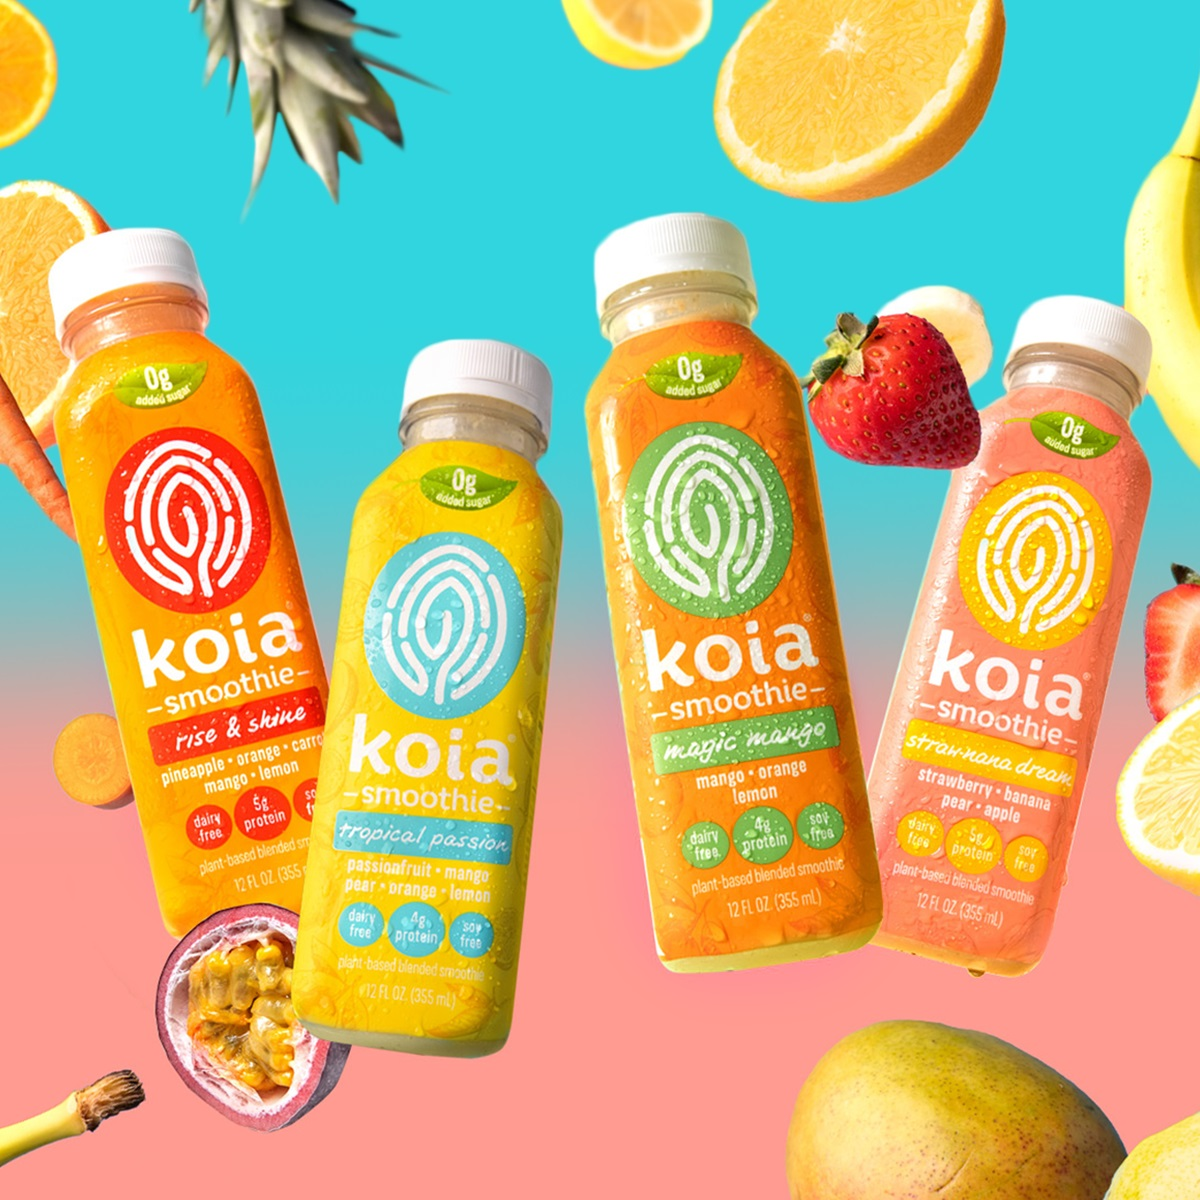 Koia Smoothies Reviews and Info - Dairy-free, vegan, low sugar blends with real fruit, coconut milk, plant-based protein, chia seeds, and baobab.